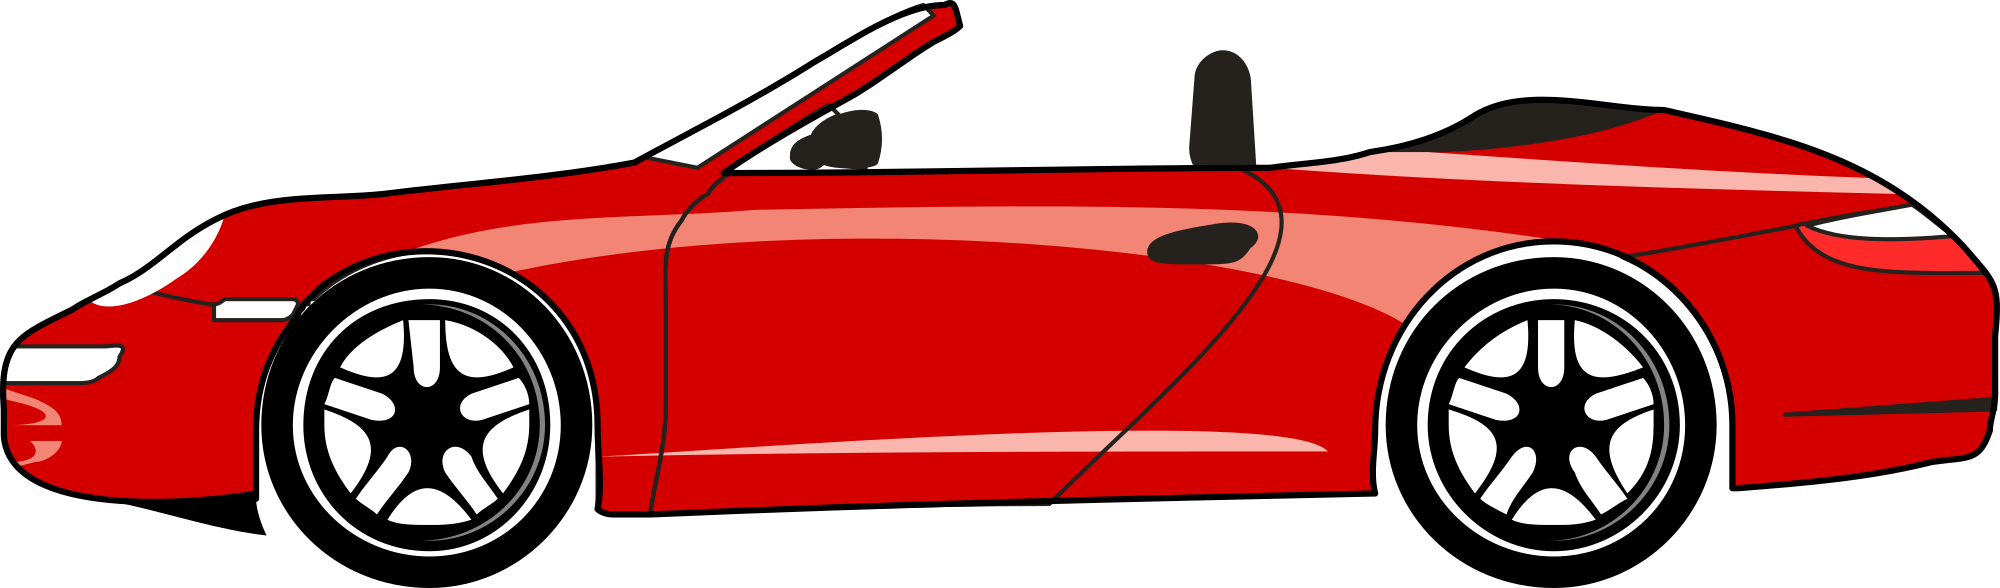 Red cars clipart jpg black and white Convertible Car Cliparts | Free download best Convertible ... jpg black and white